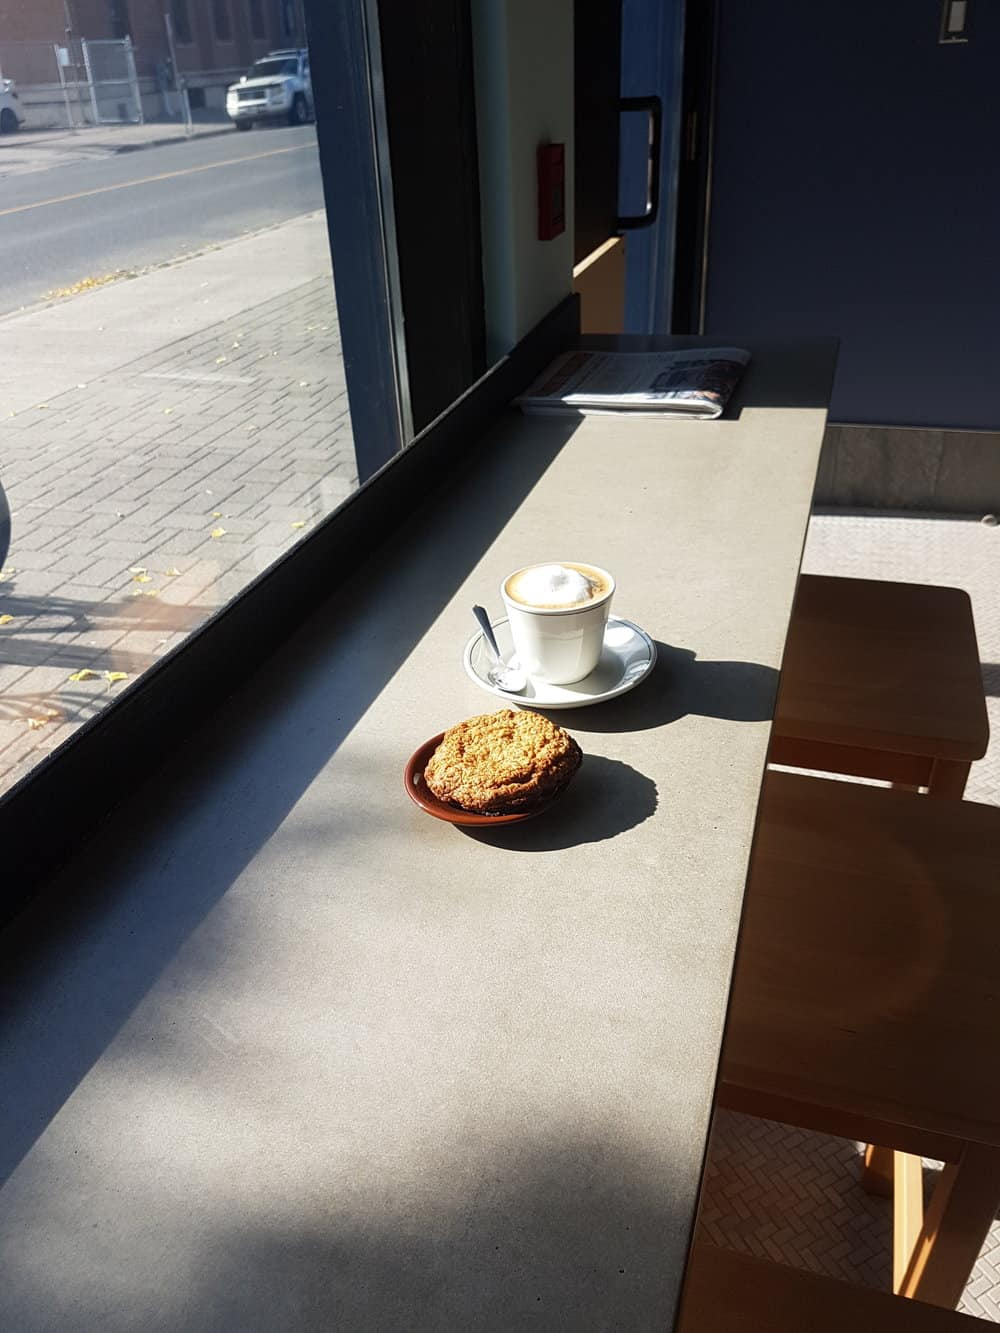 americano.cookie.interior.NK.jpg